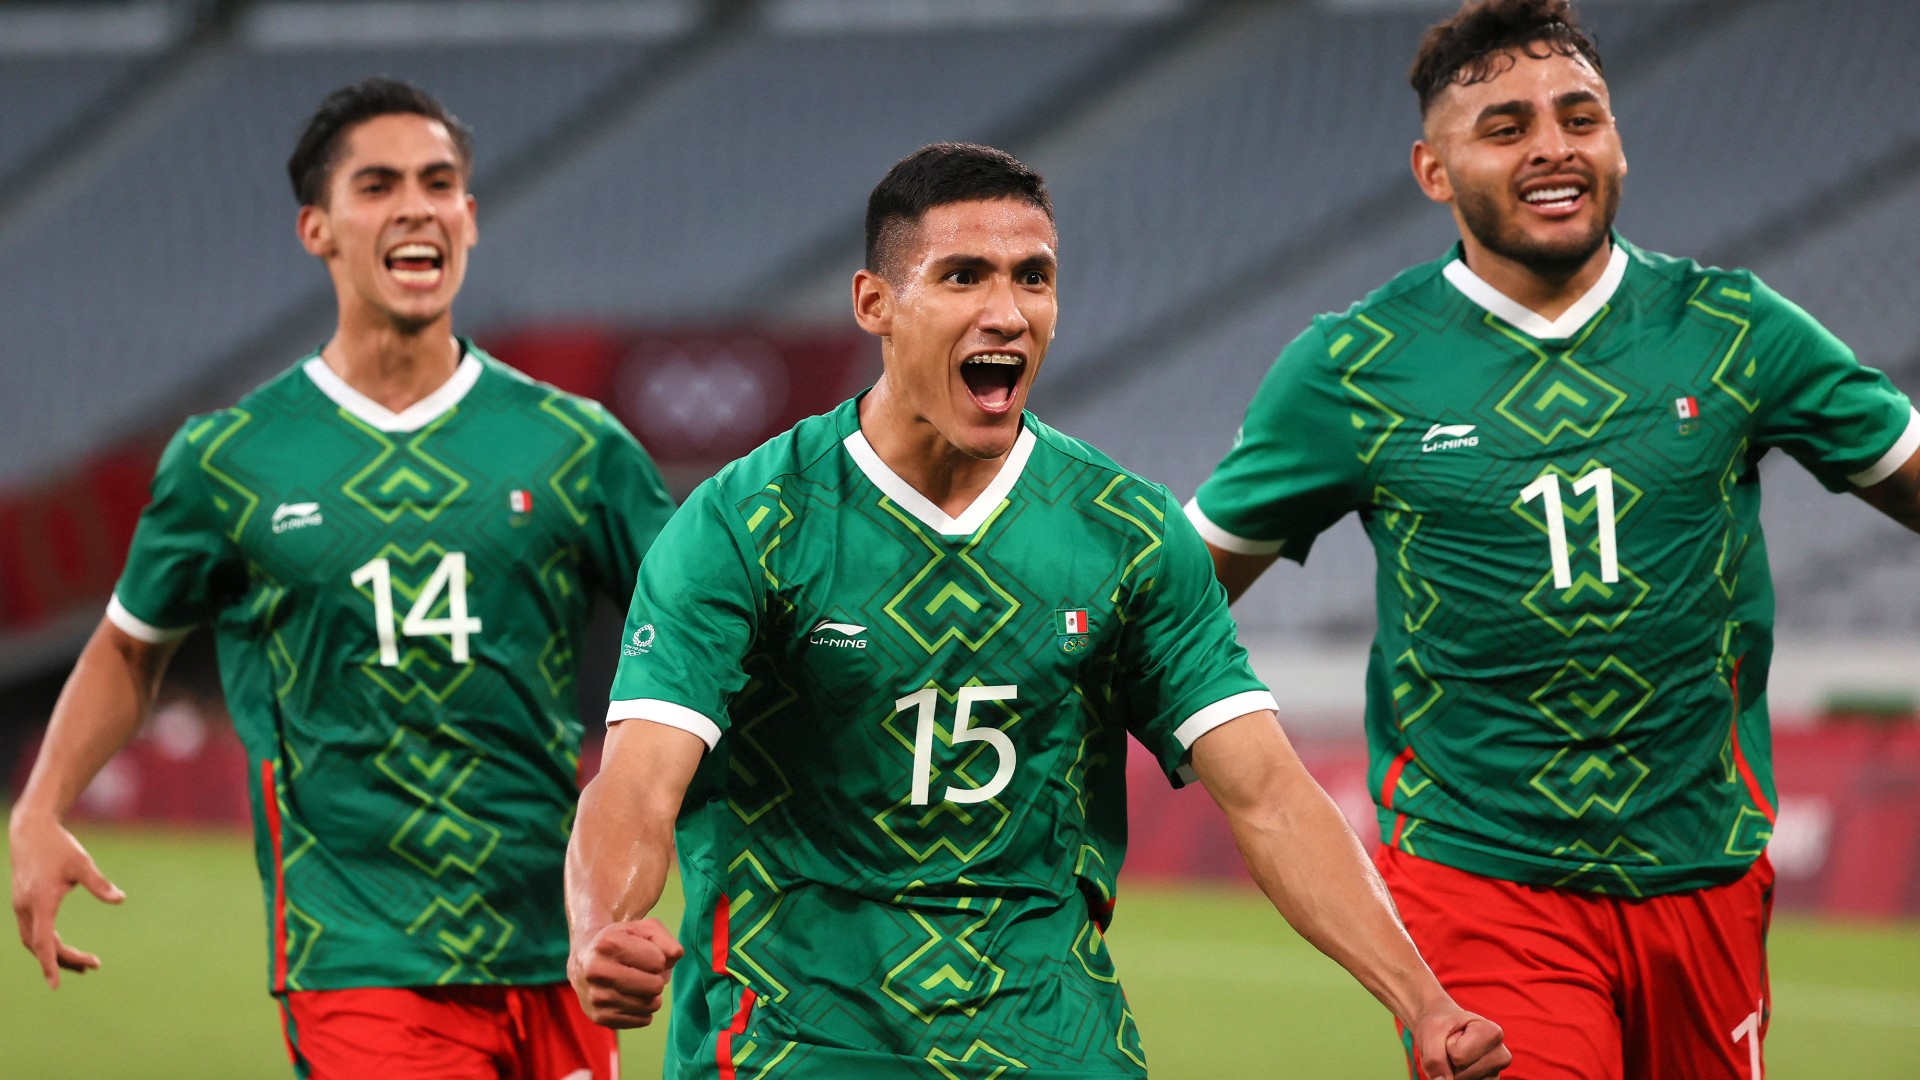 Mexico have shown they are a strong contender for Olympic gold in men's football after beating France